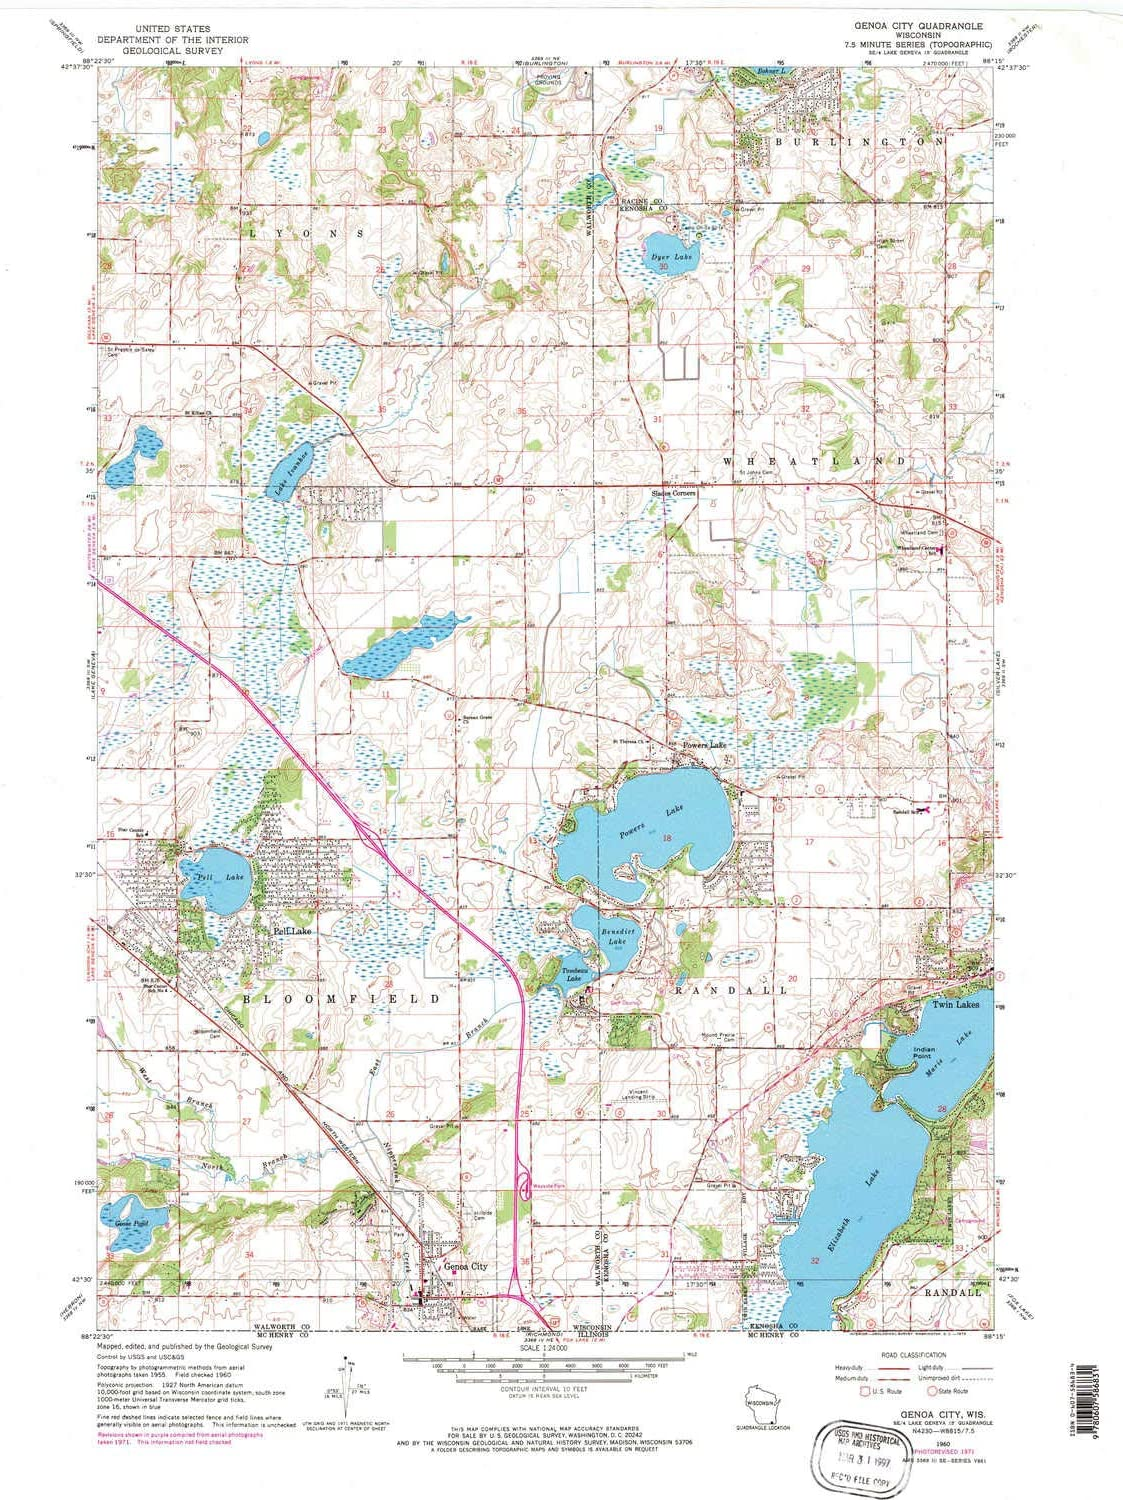 Amazon Com Yellowmaps Genoa City Wi Topo Map 1 24000 Scale 7 5 X 7 5 Minute Historical 1960 Updated 1972 28 17 X 21 19 In Polypropylene Sports Outdoors